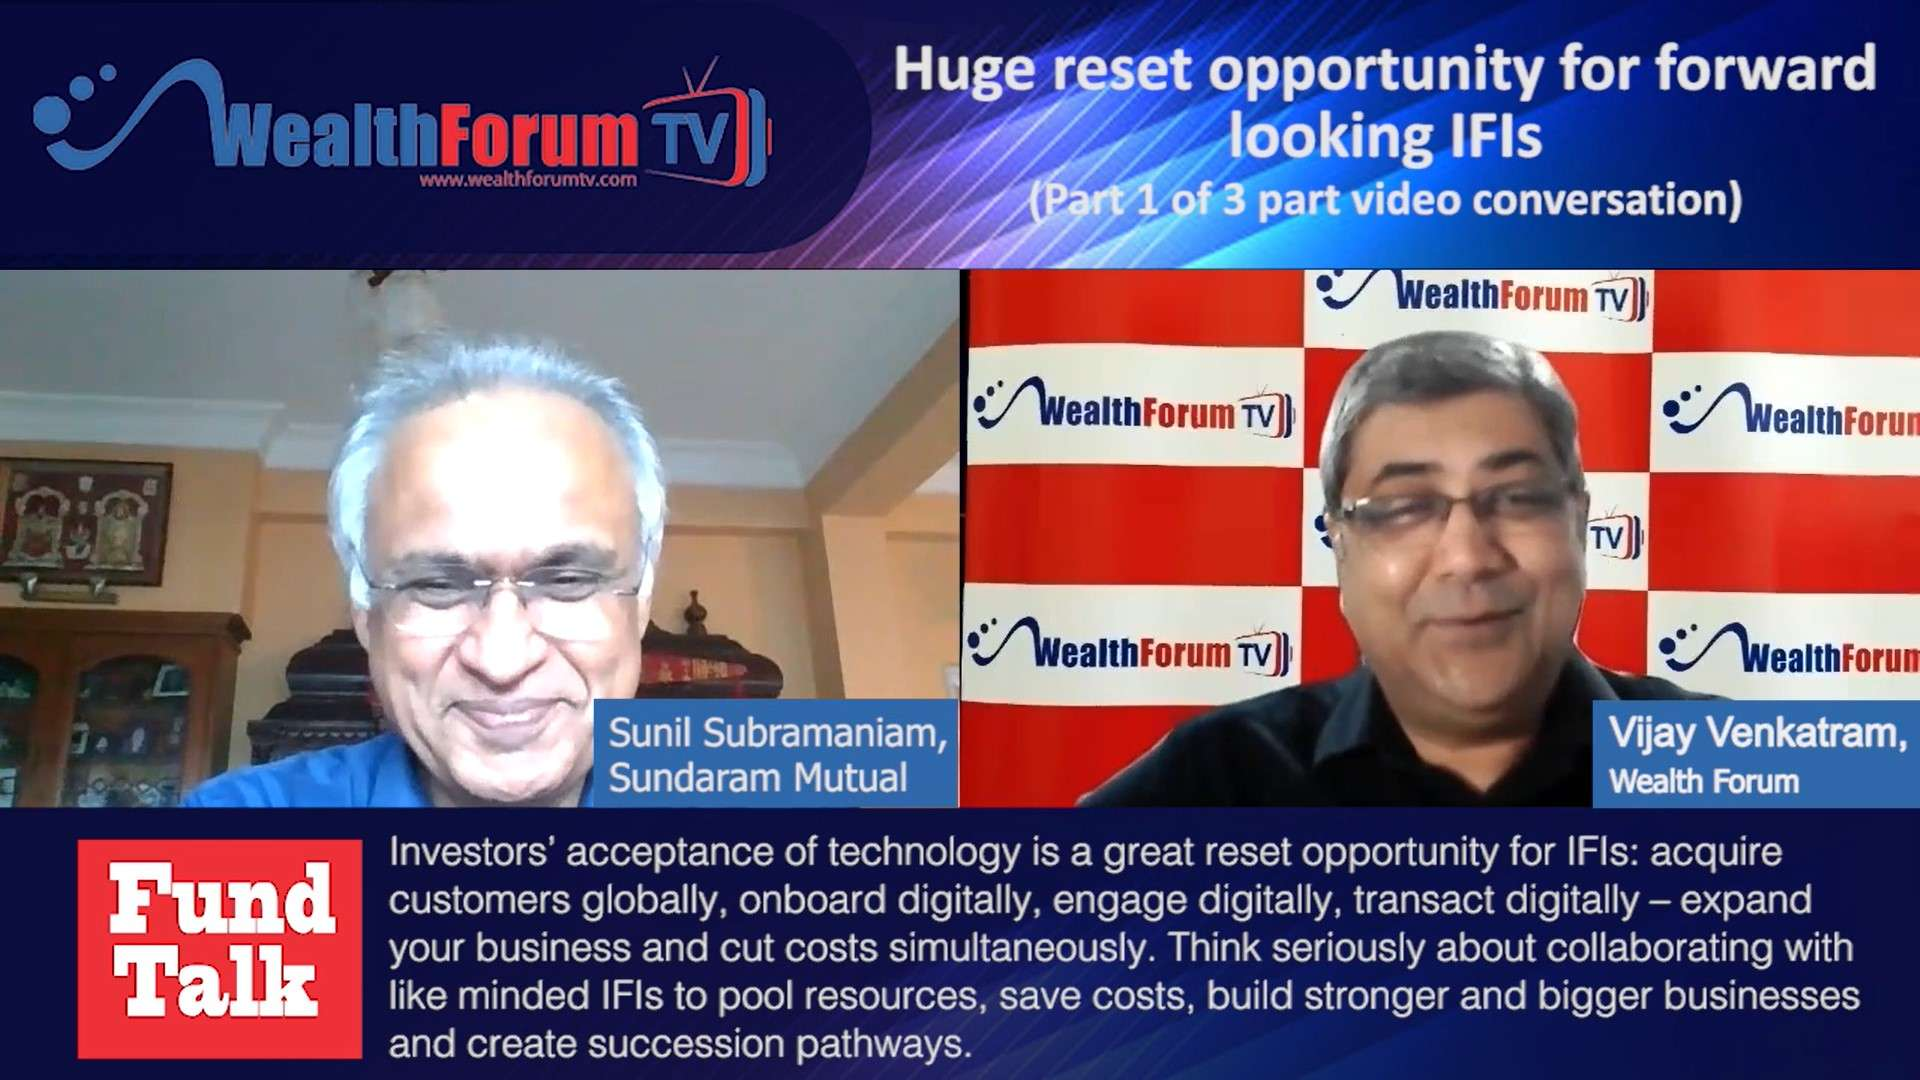 WealthForum TV